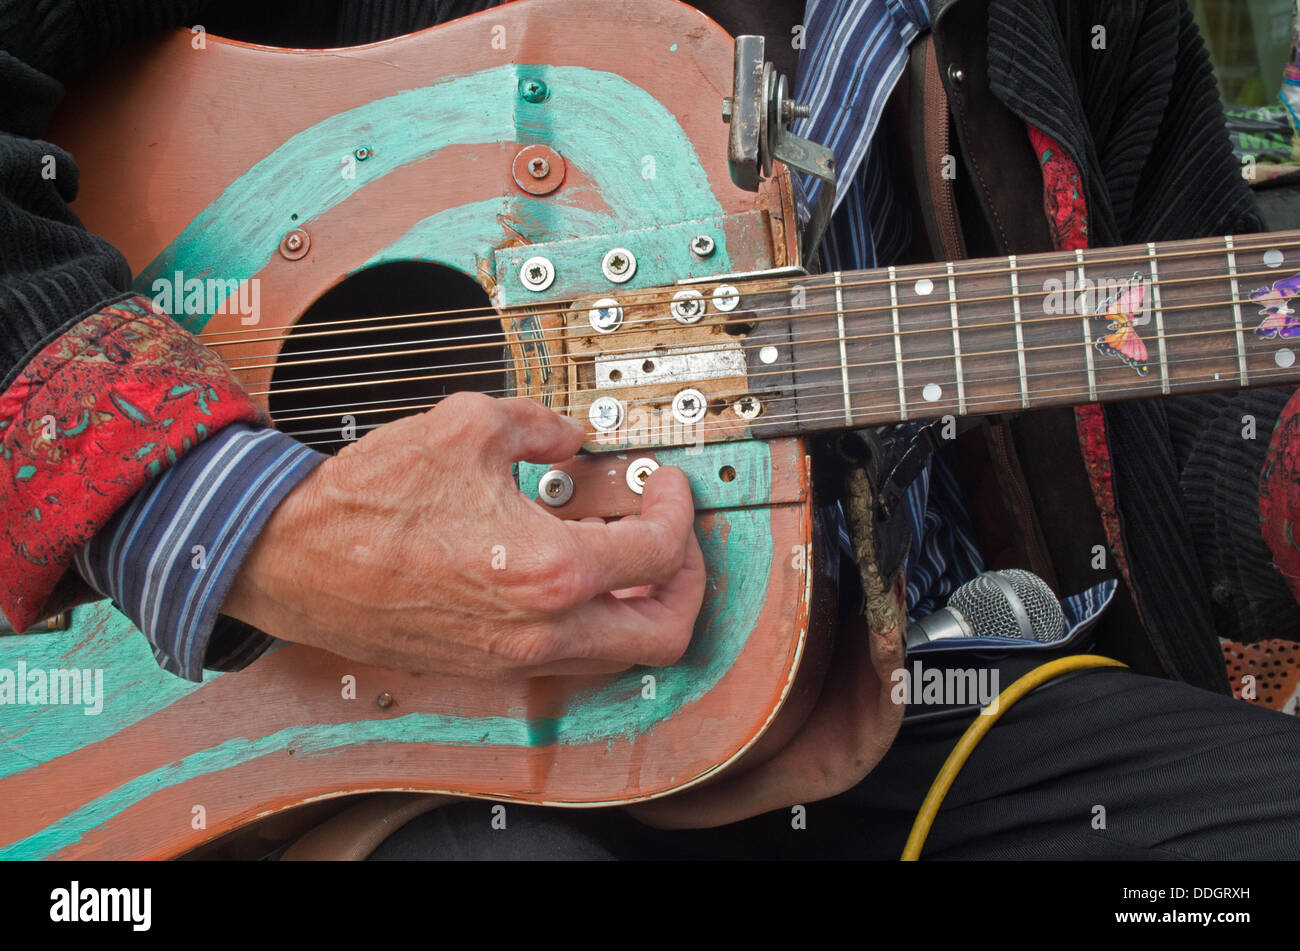 man-playing-a-repaired-hand-painted-guit